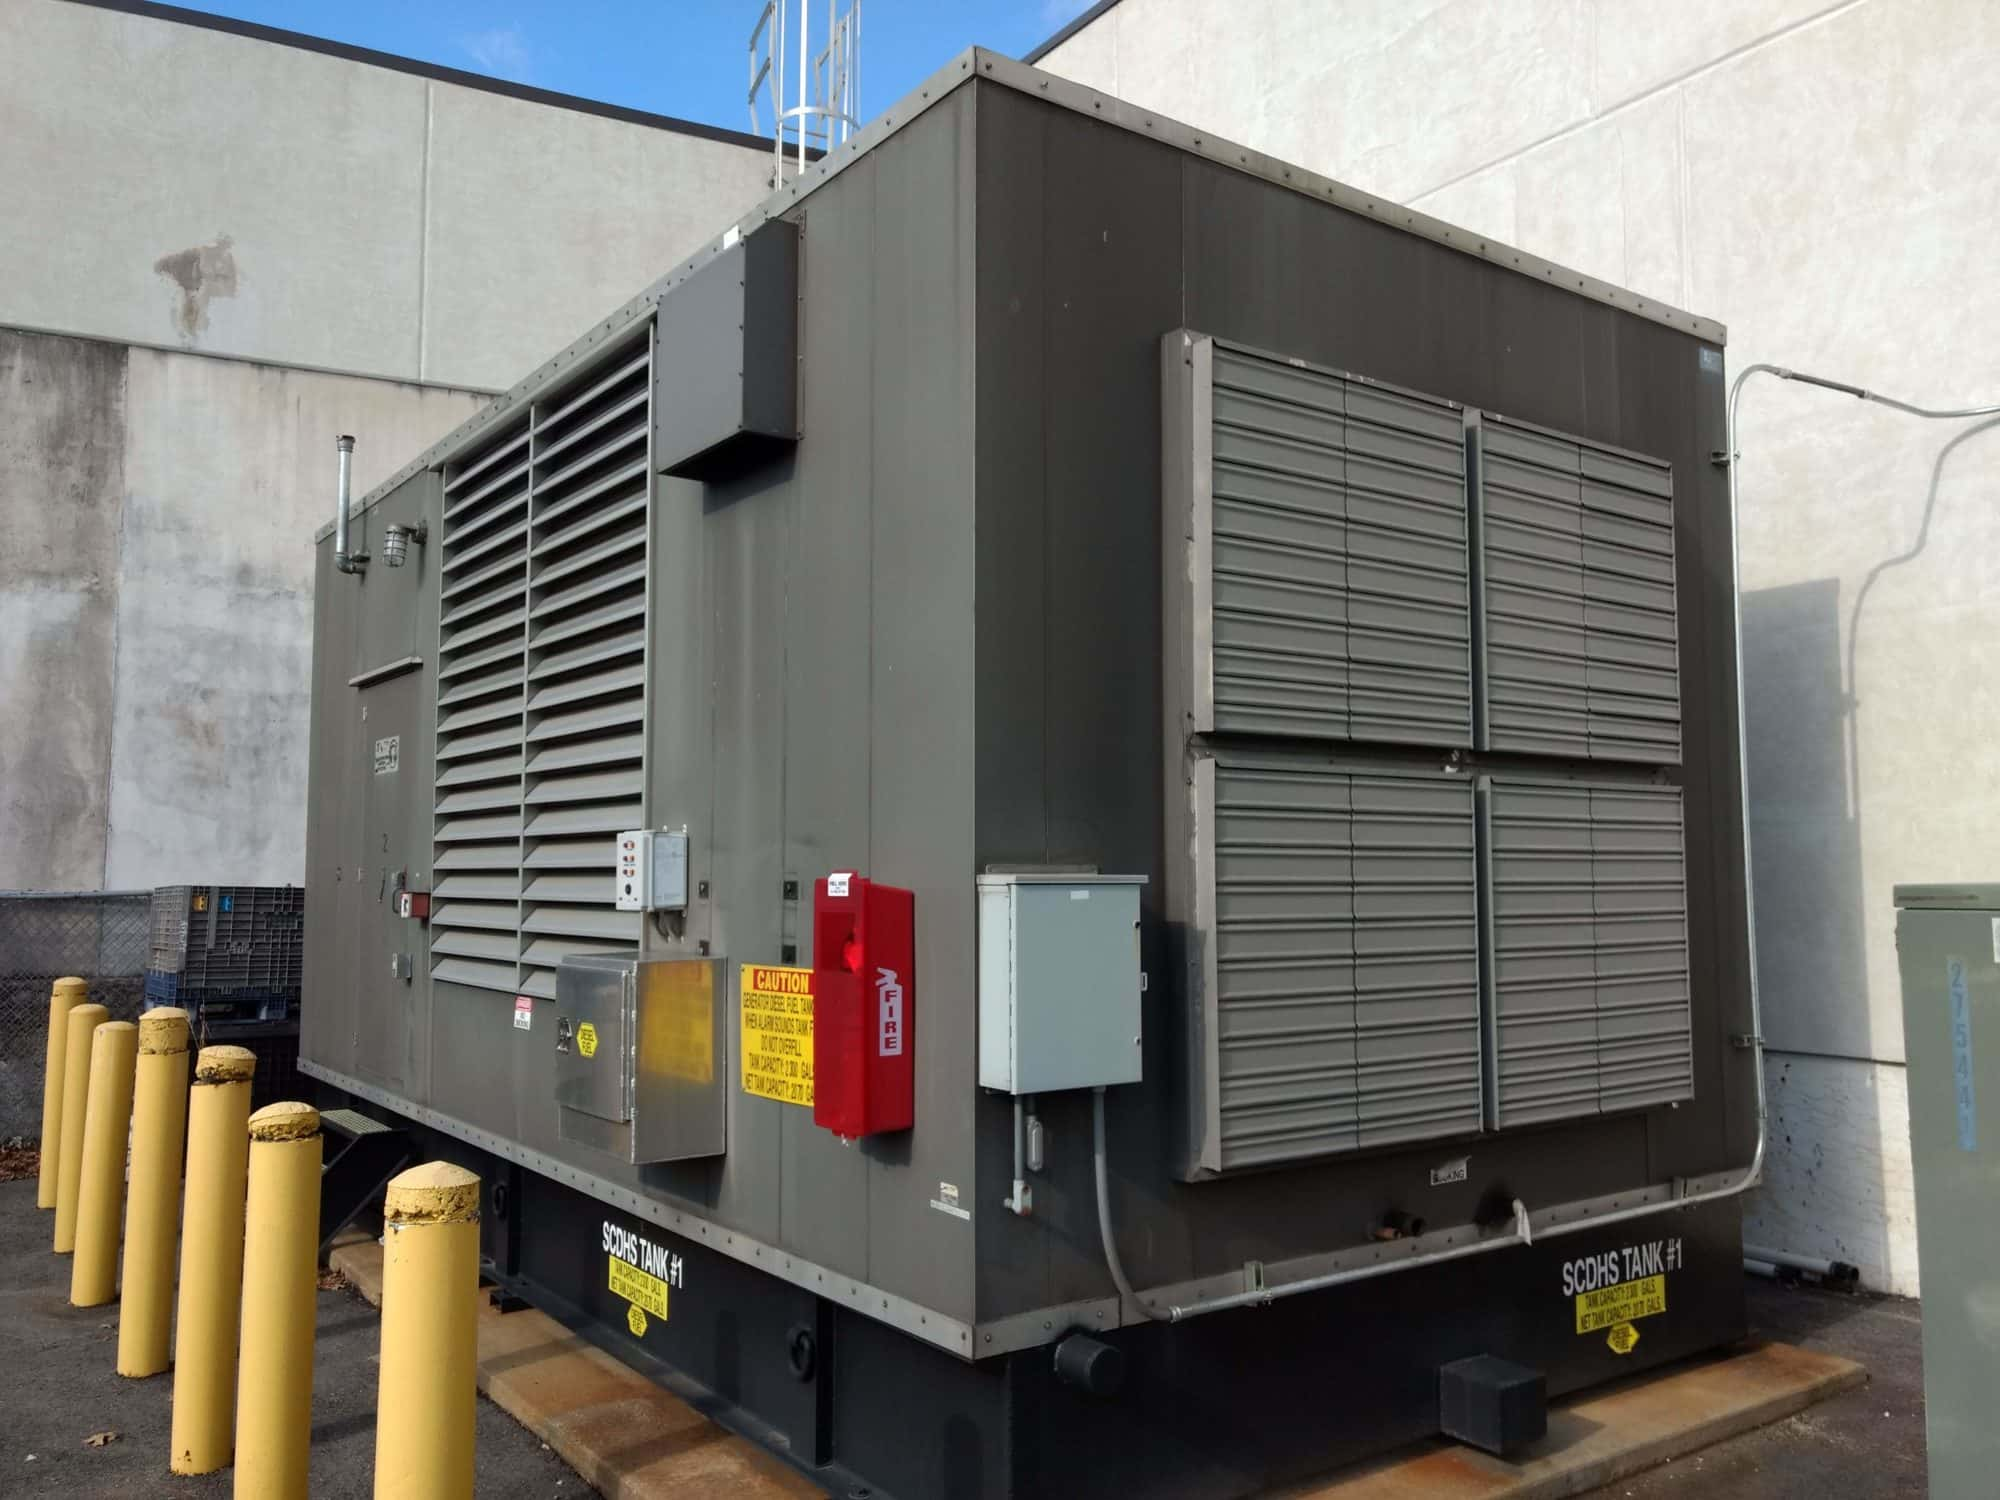 hight resolution of commercial generators play a vital role in various applications but are most known for acting as backup power in the event of a power outage